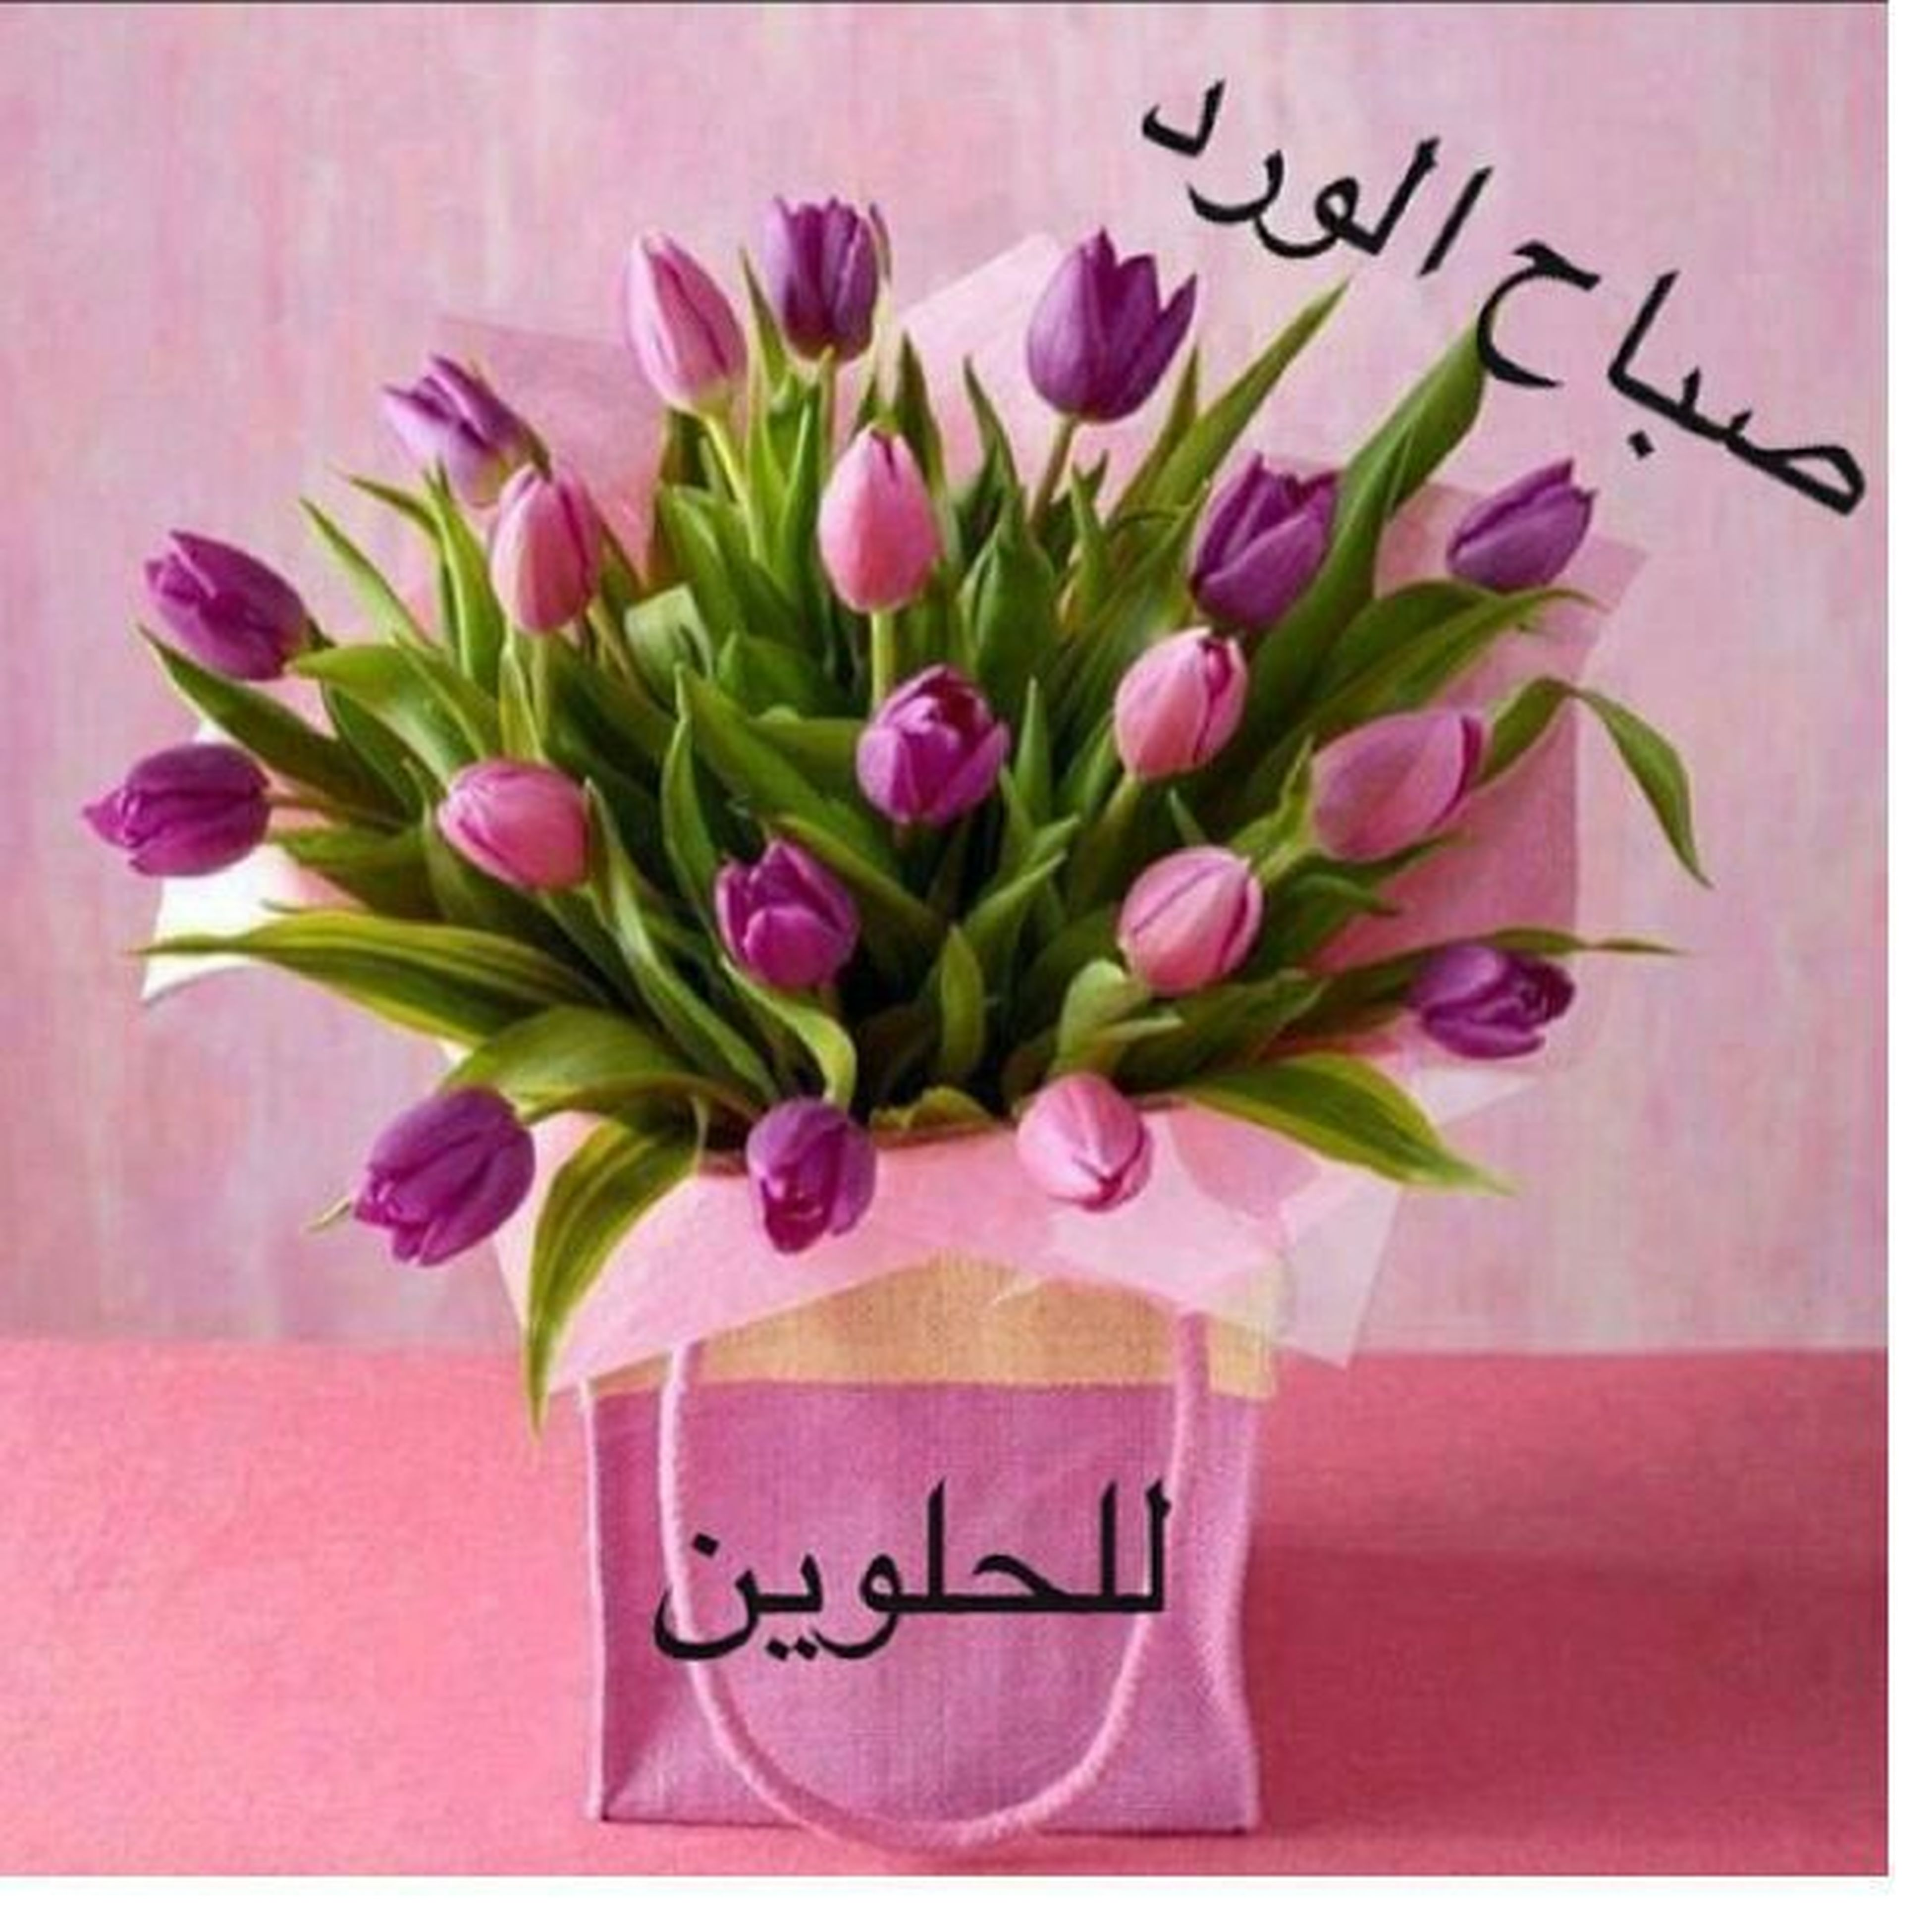 flower, indoors, wall - building feature, pink color, decoration, petal, freshness, text, close-up, table, vase, wall, fragility, art and craft, creativity, western script, no people, still life, art, home interior